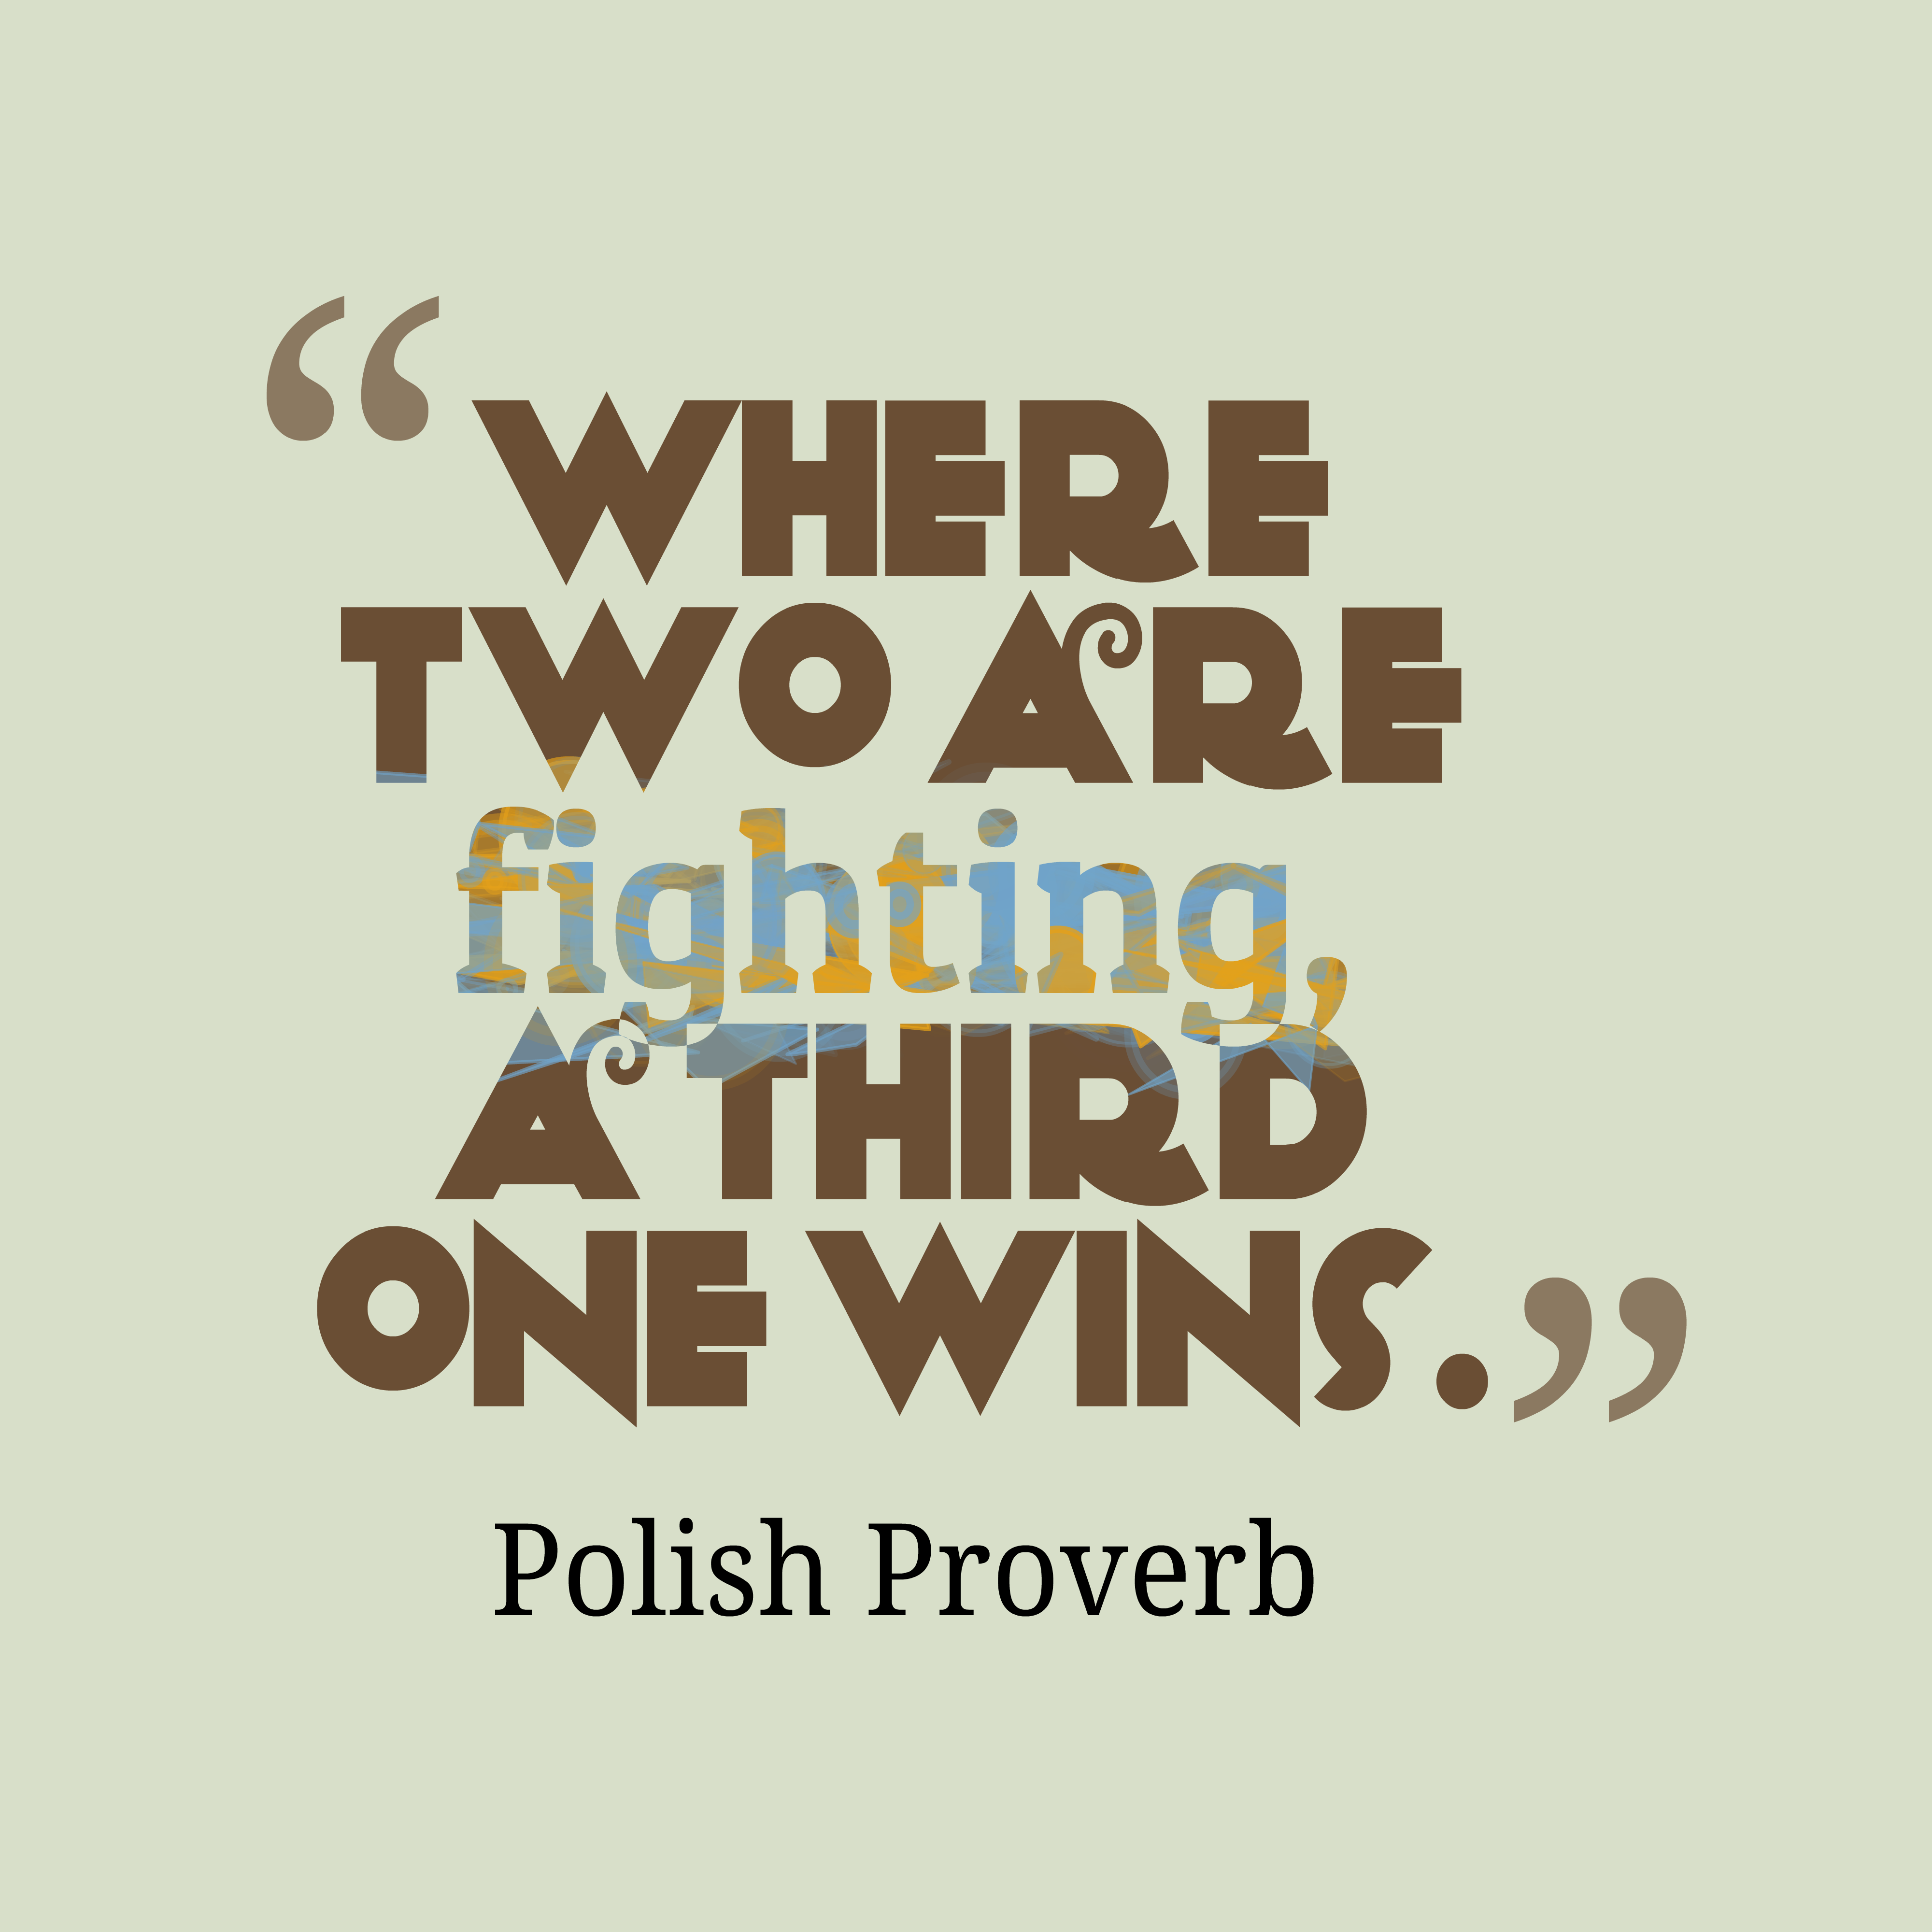 Polish proverb about competition. | QuotesCover.com